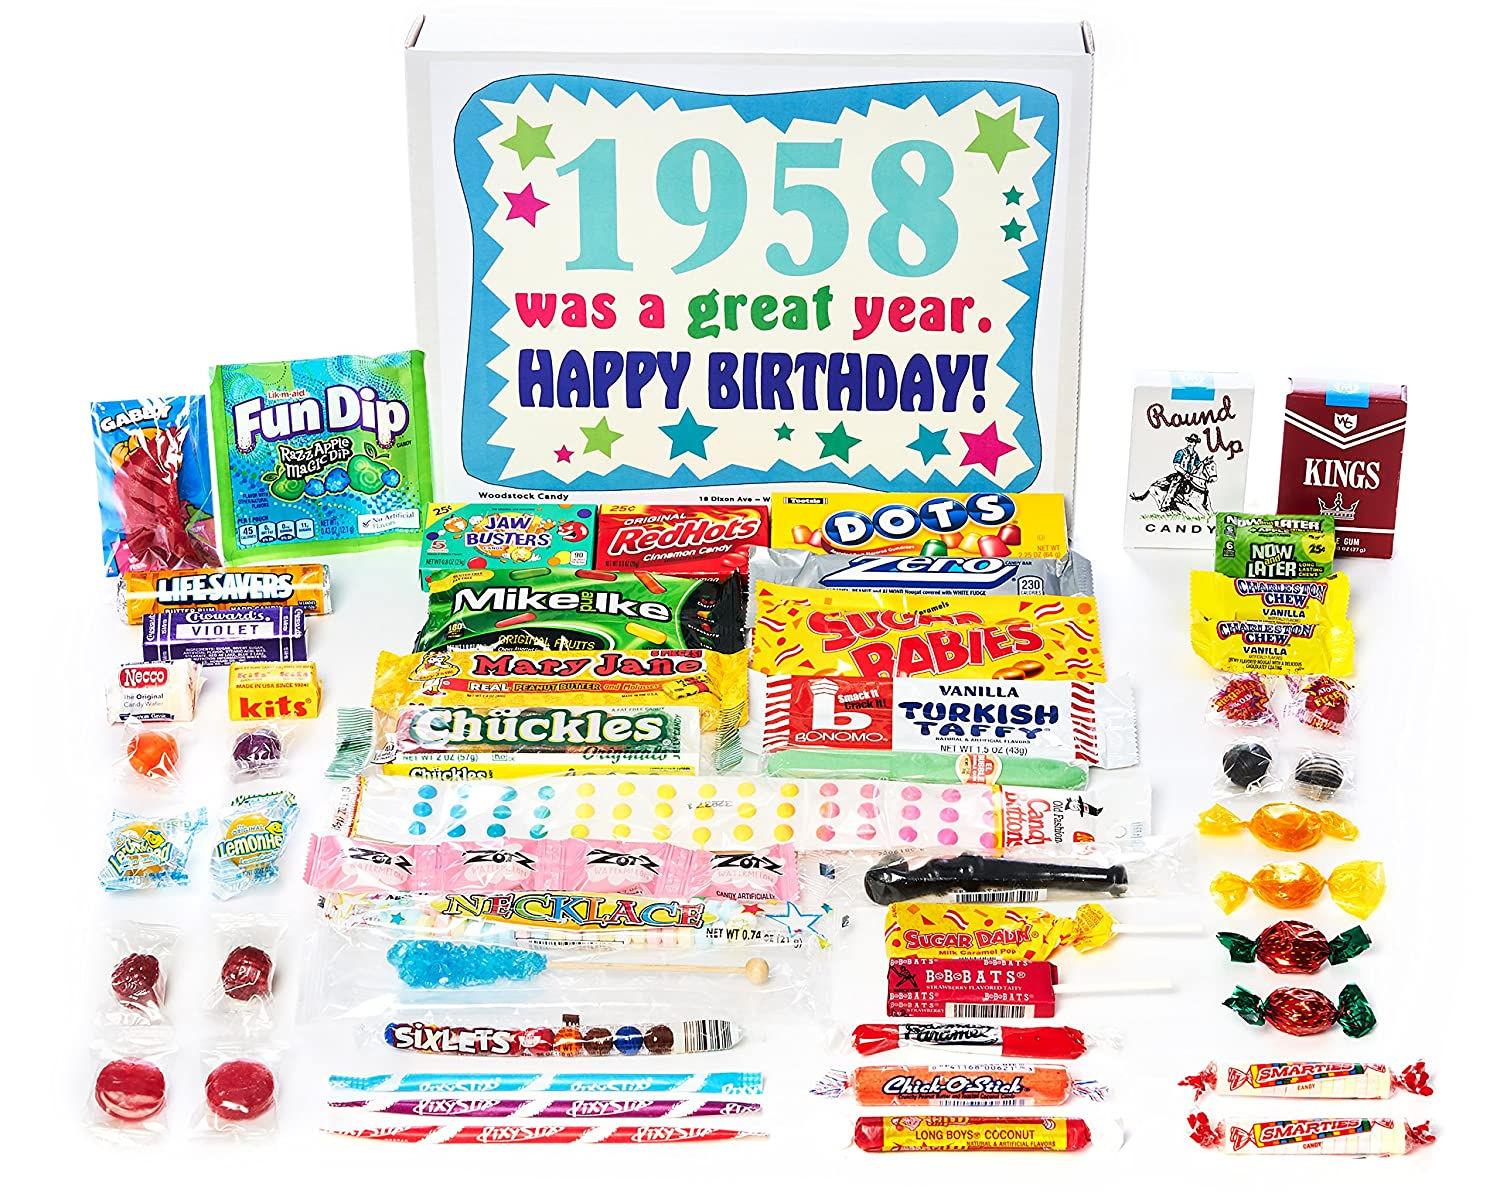 Woodstock Candy ~ 1958 62nd Birthday Gift Box Nostalgic Retro Candy Assortment from Childhood for 62 Old Man or Woman Born 1958